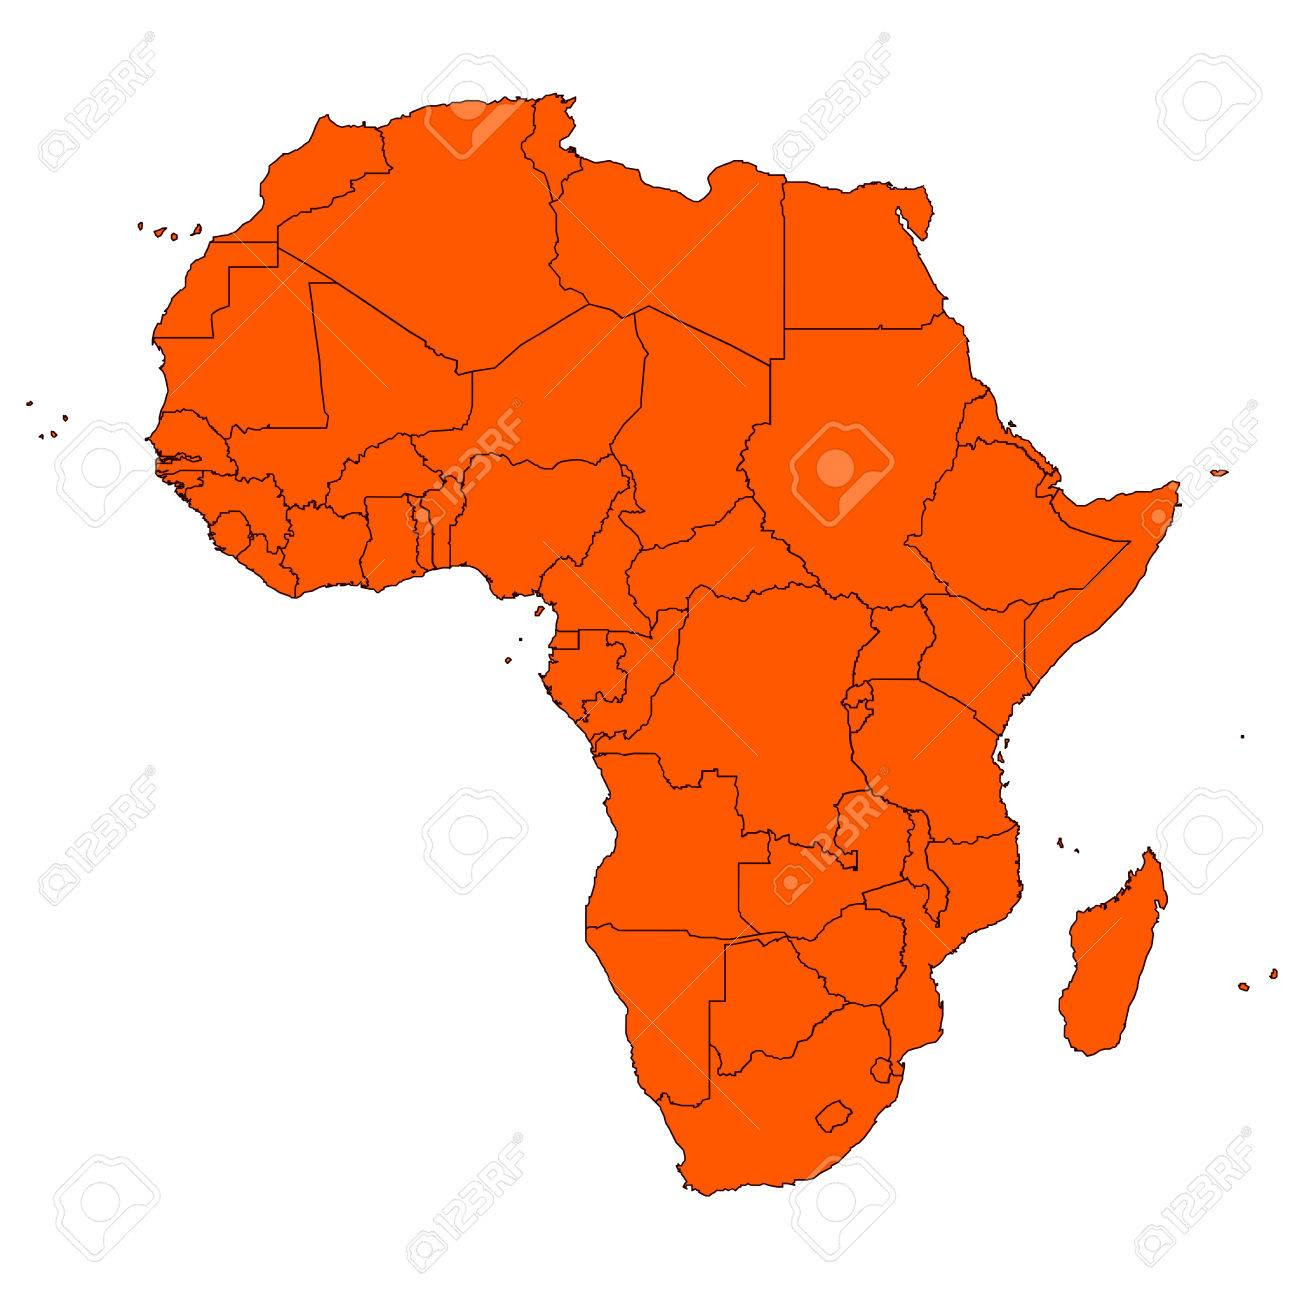 Editable Map Of Africa And Islands Royalty Free Cliparts, Vectors ...